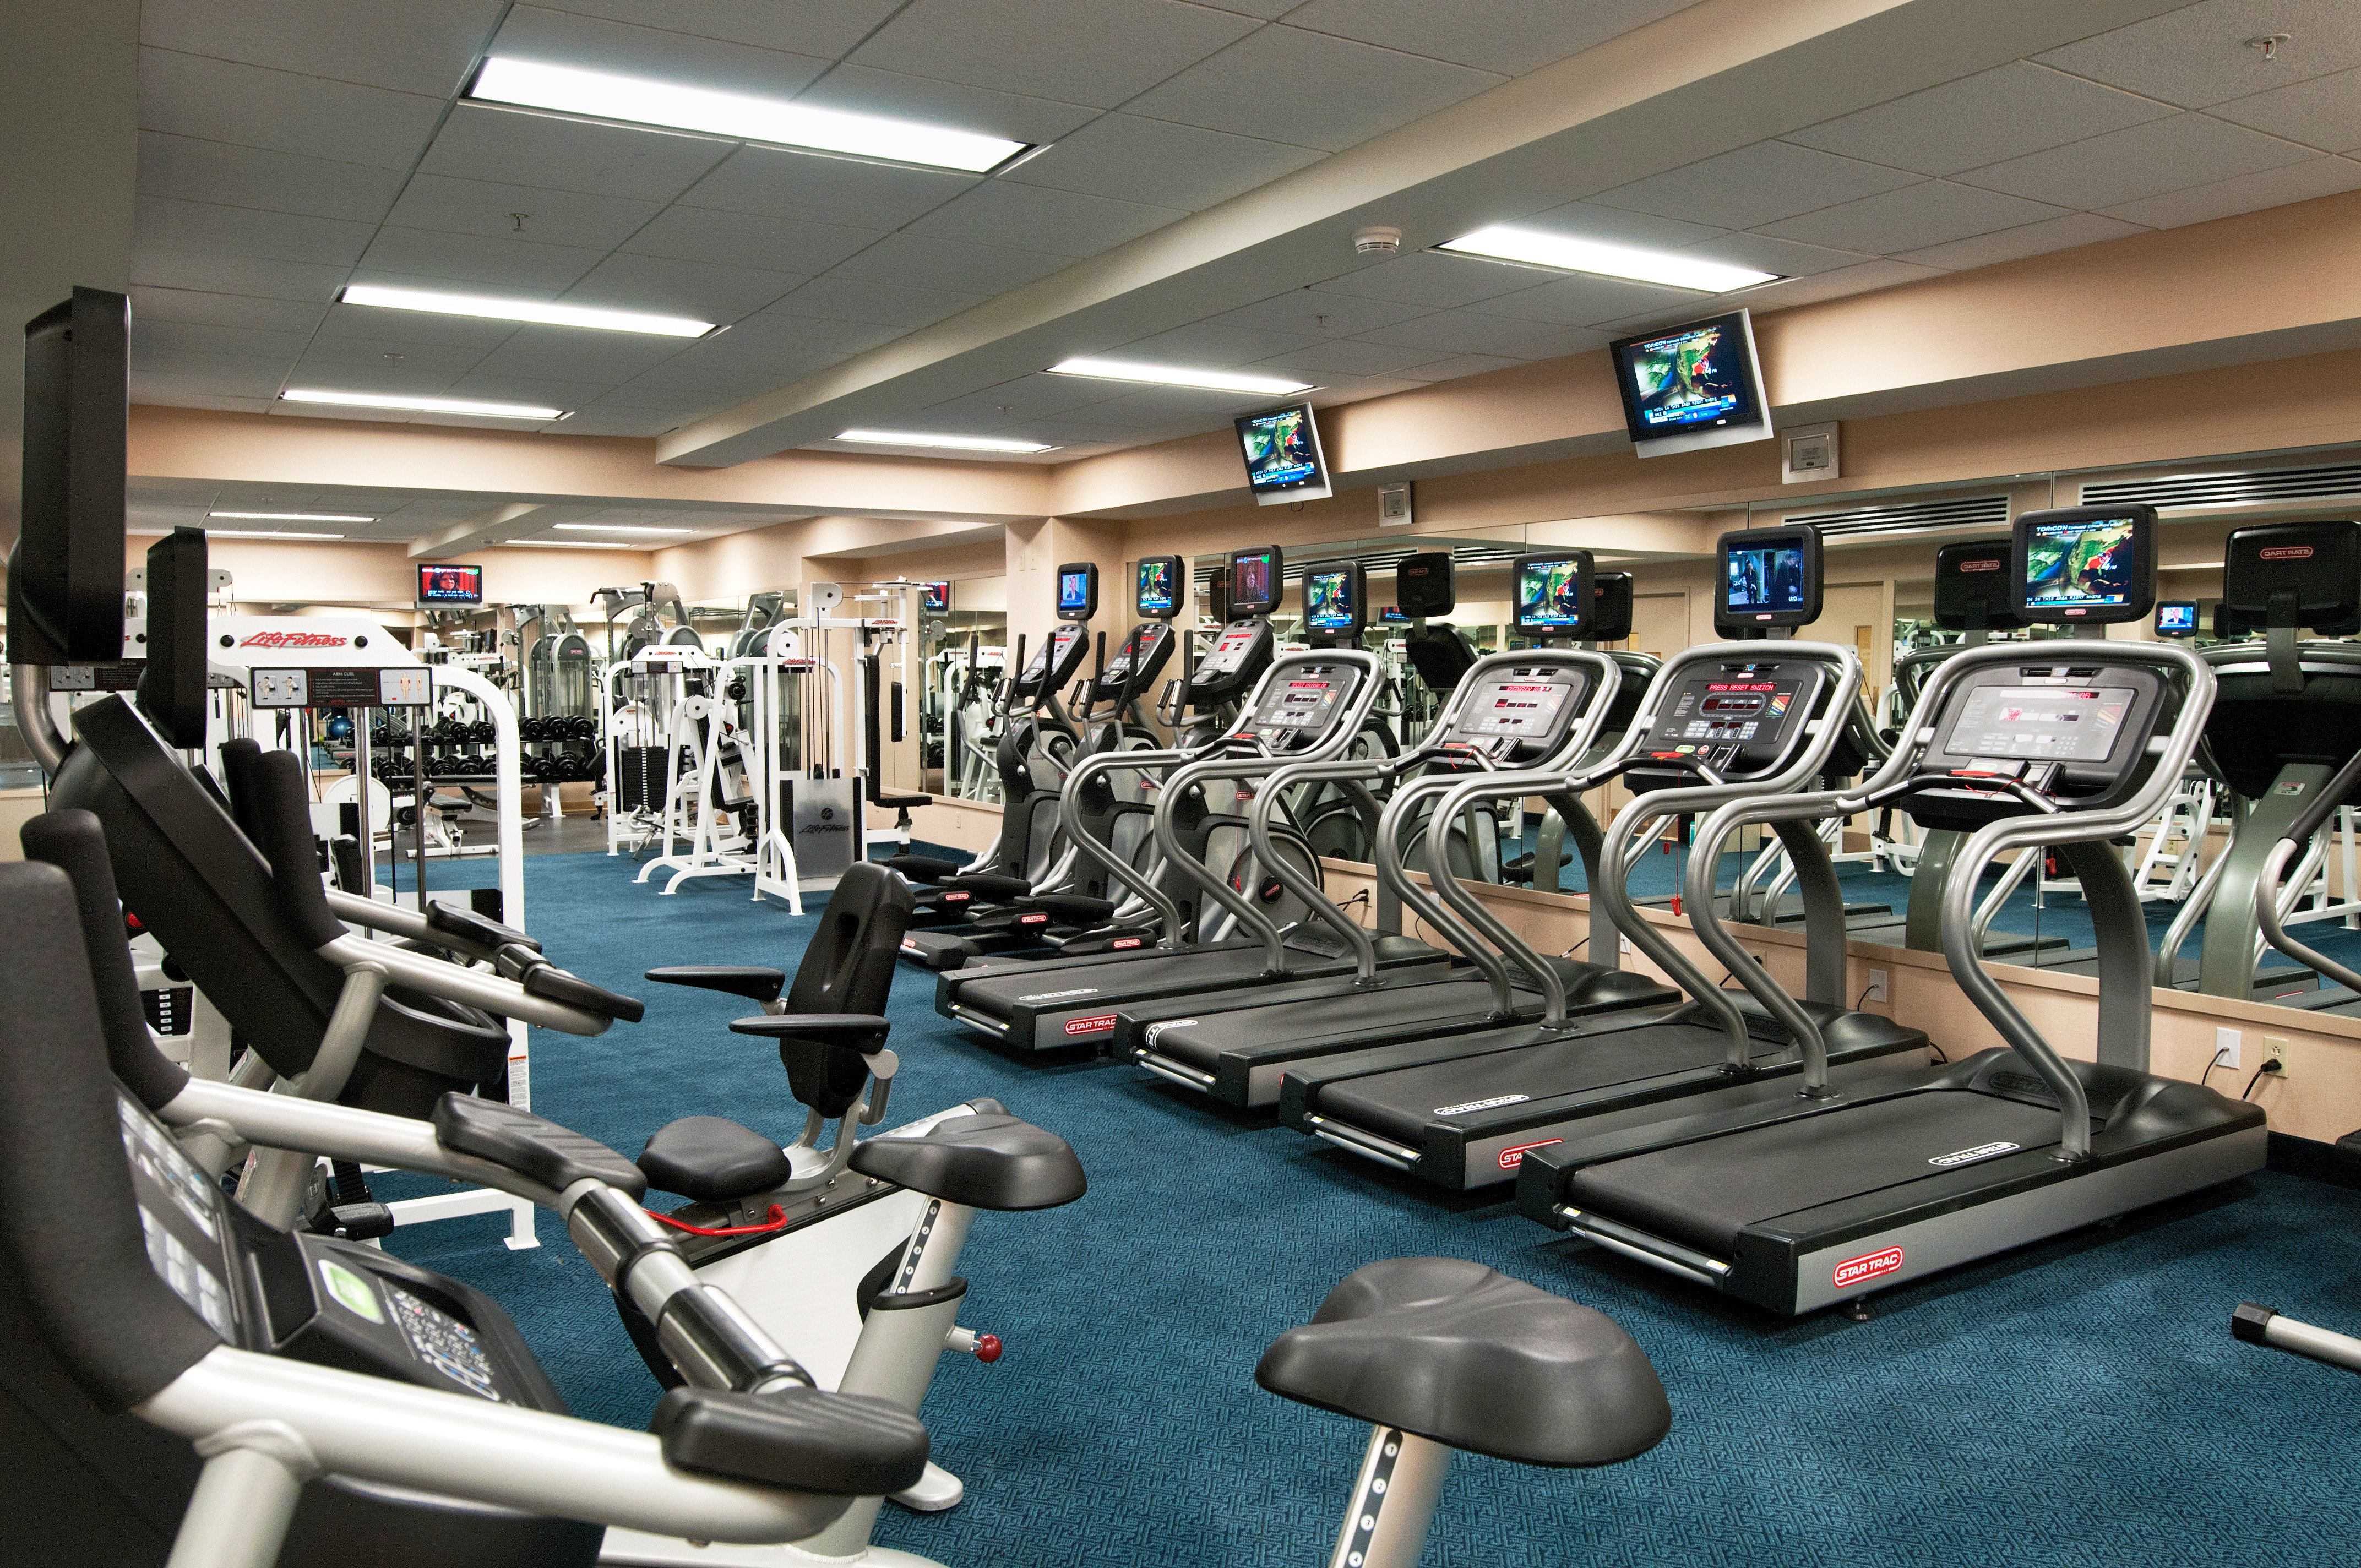 Classic Fitness Resort Sport Wellness structure gym sport venue exercise device leisure